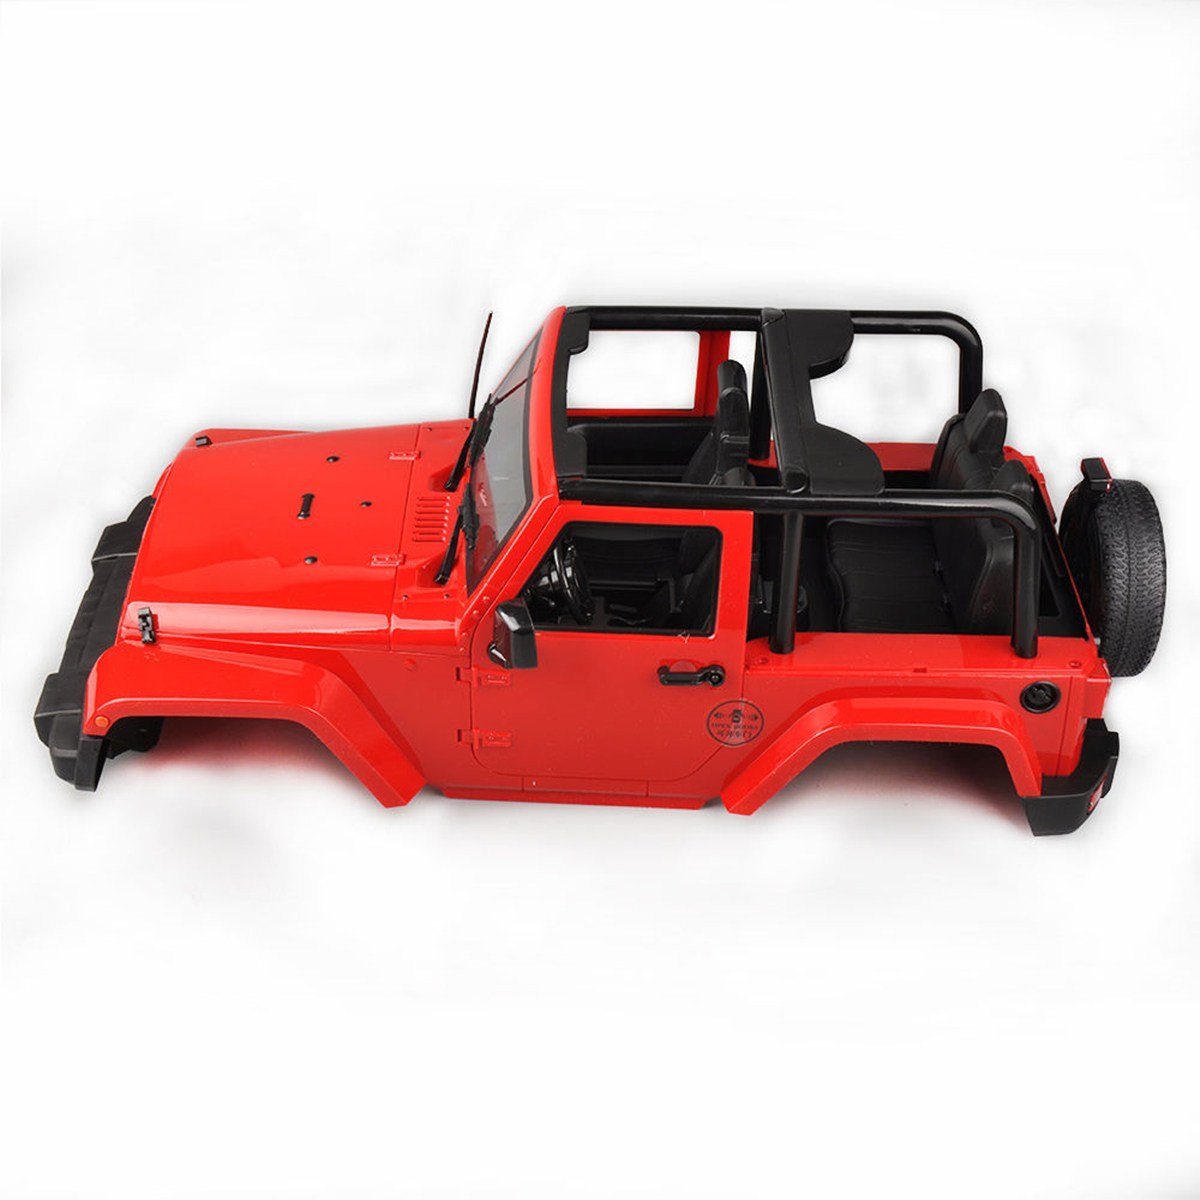 Hard Body Shell Canopy J eep RC 1/10 SCX10/D90 Rock CRAWLER Truck Red body jeep jk 1 10 red 1 10 rc crawler rc car hard top d90 body shell of jeep wrangle scx10 d90 90020 90021 90018